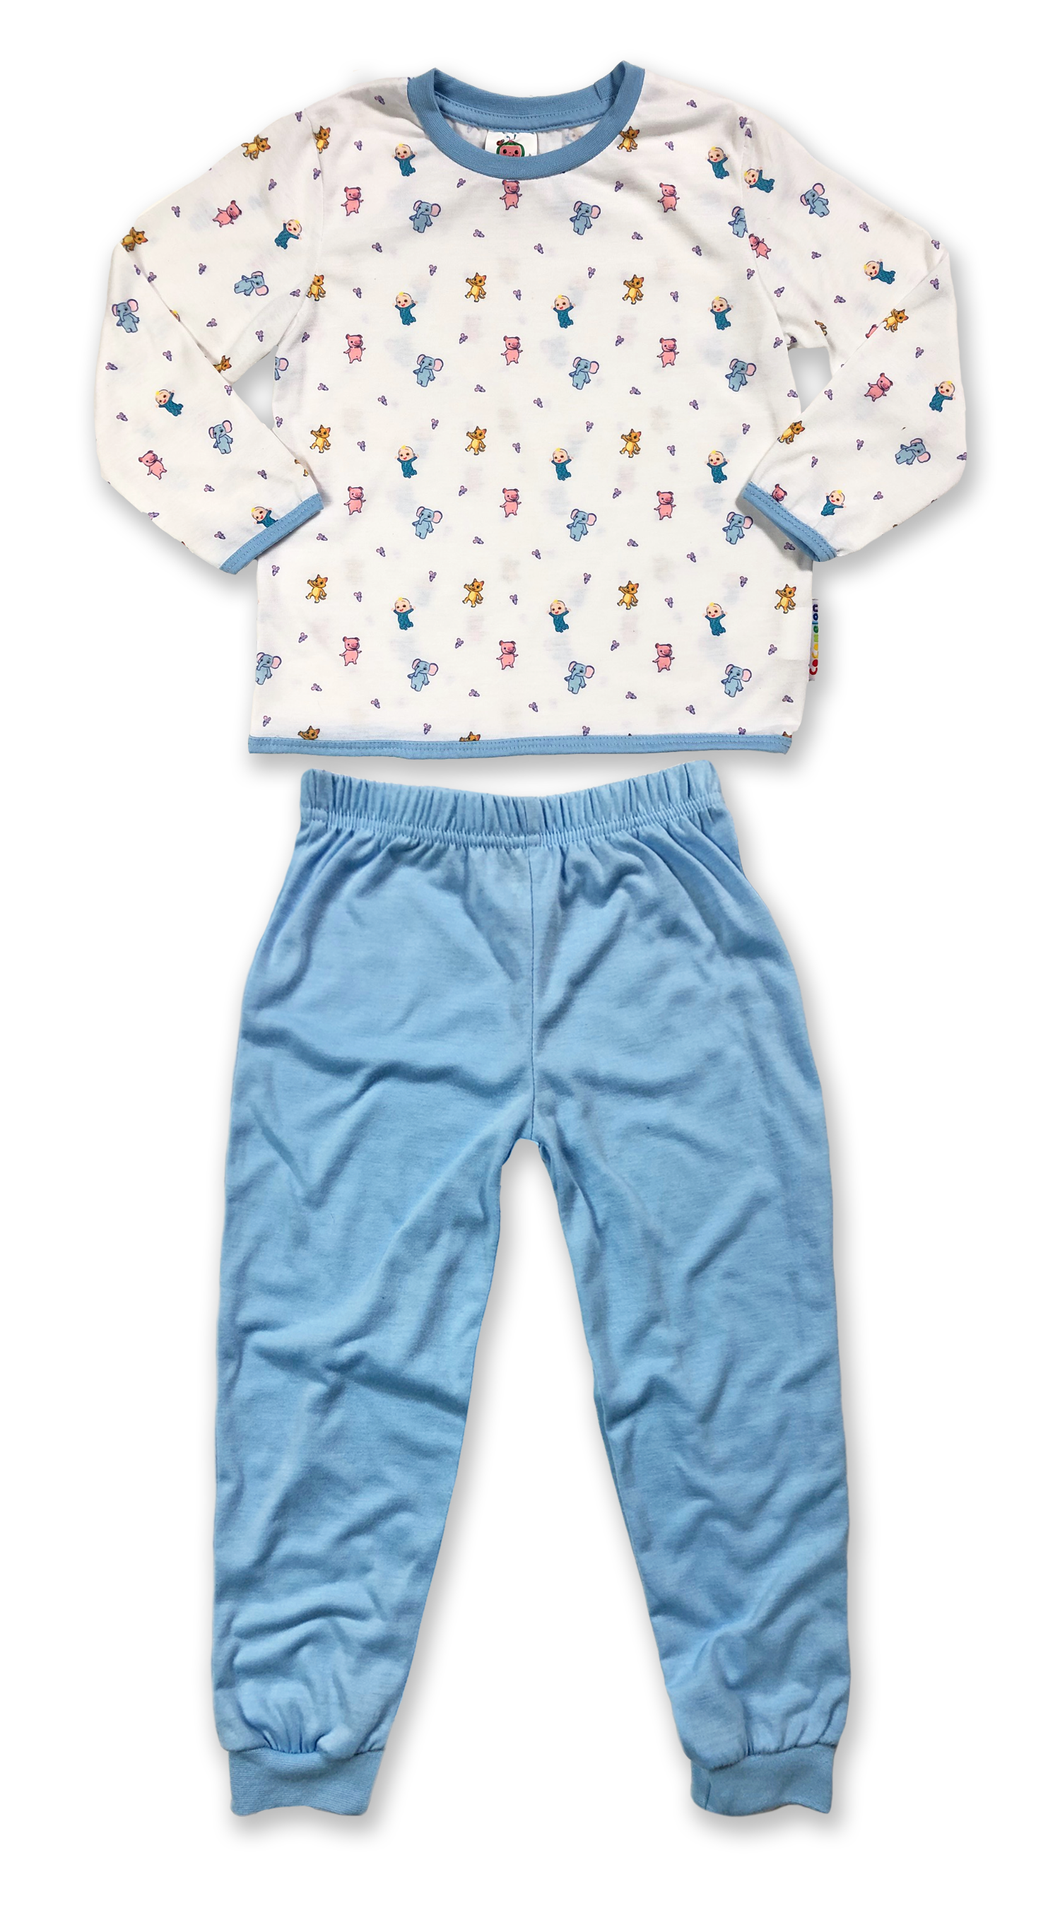 CoComelon Sleepwear Set